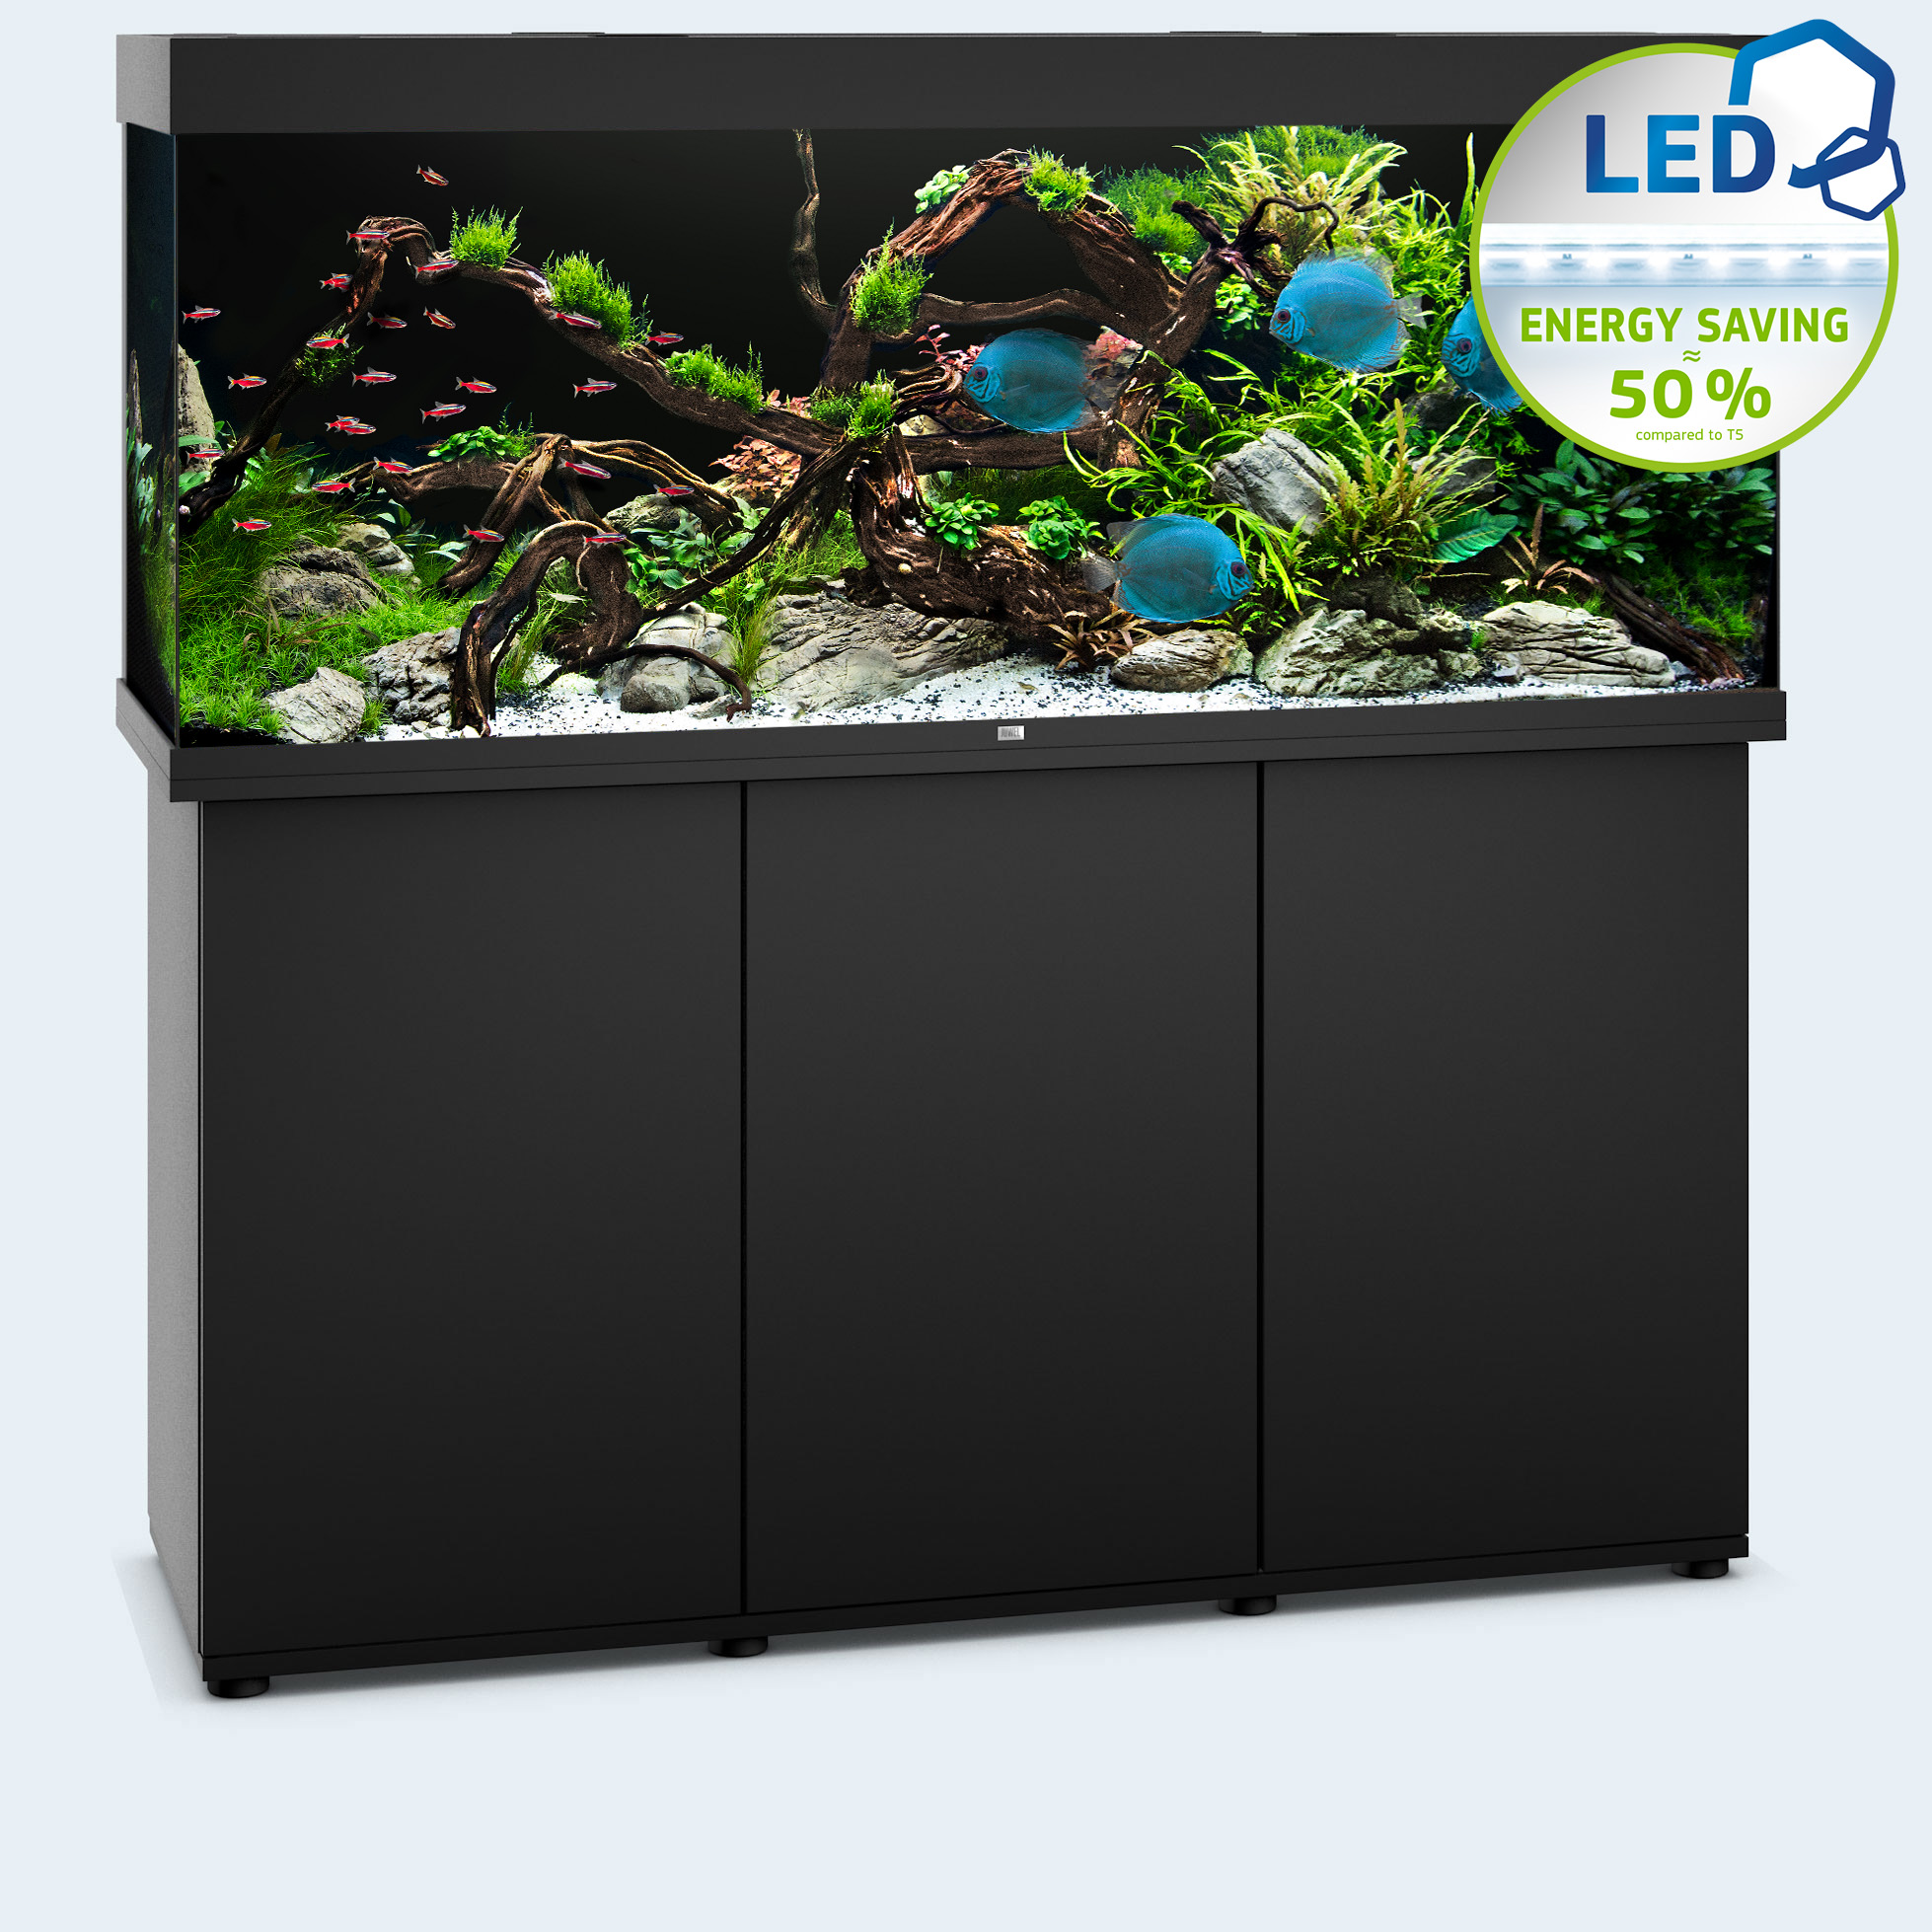 juwel aquarium rio 180 beleuchtung zuhause image idee. Black Bedroom Furniture Sets. Home Design Ideas